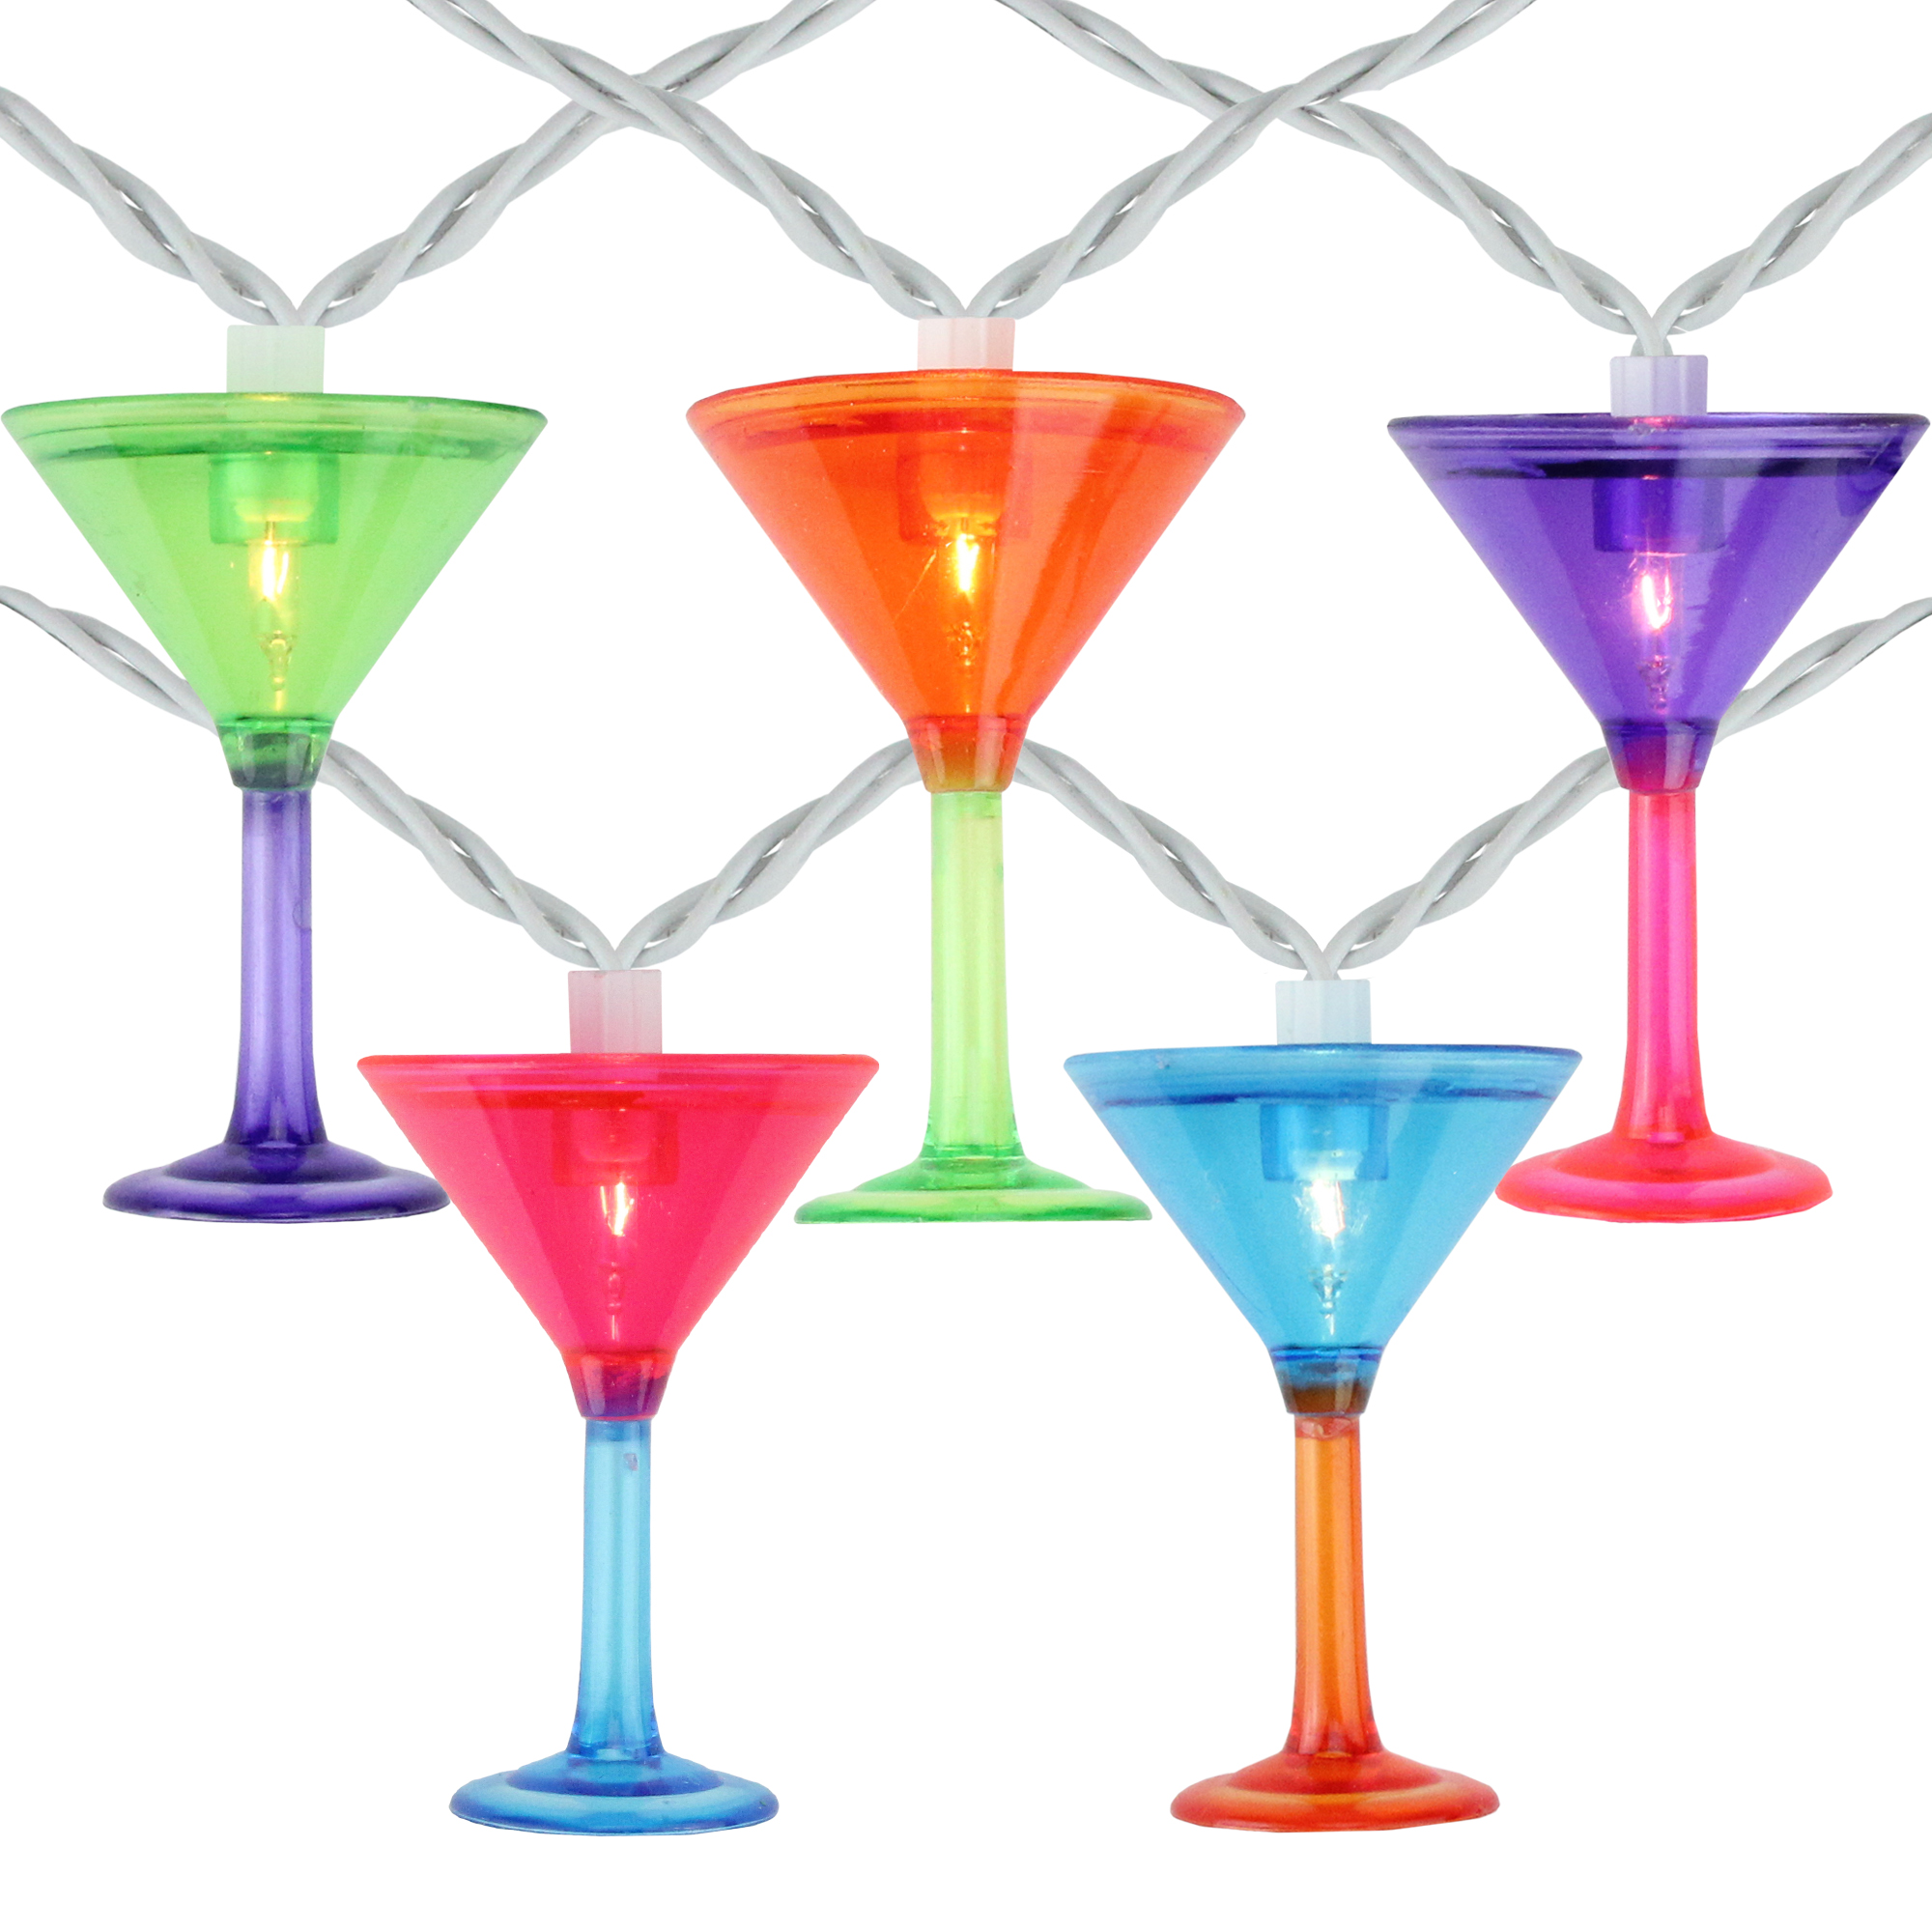 Set of 10 Multi-Colored Martini Glass Garden Patio Christmas Lights - White Wire